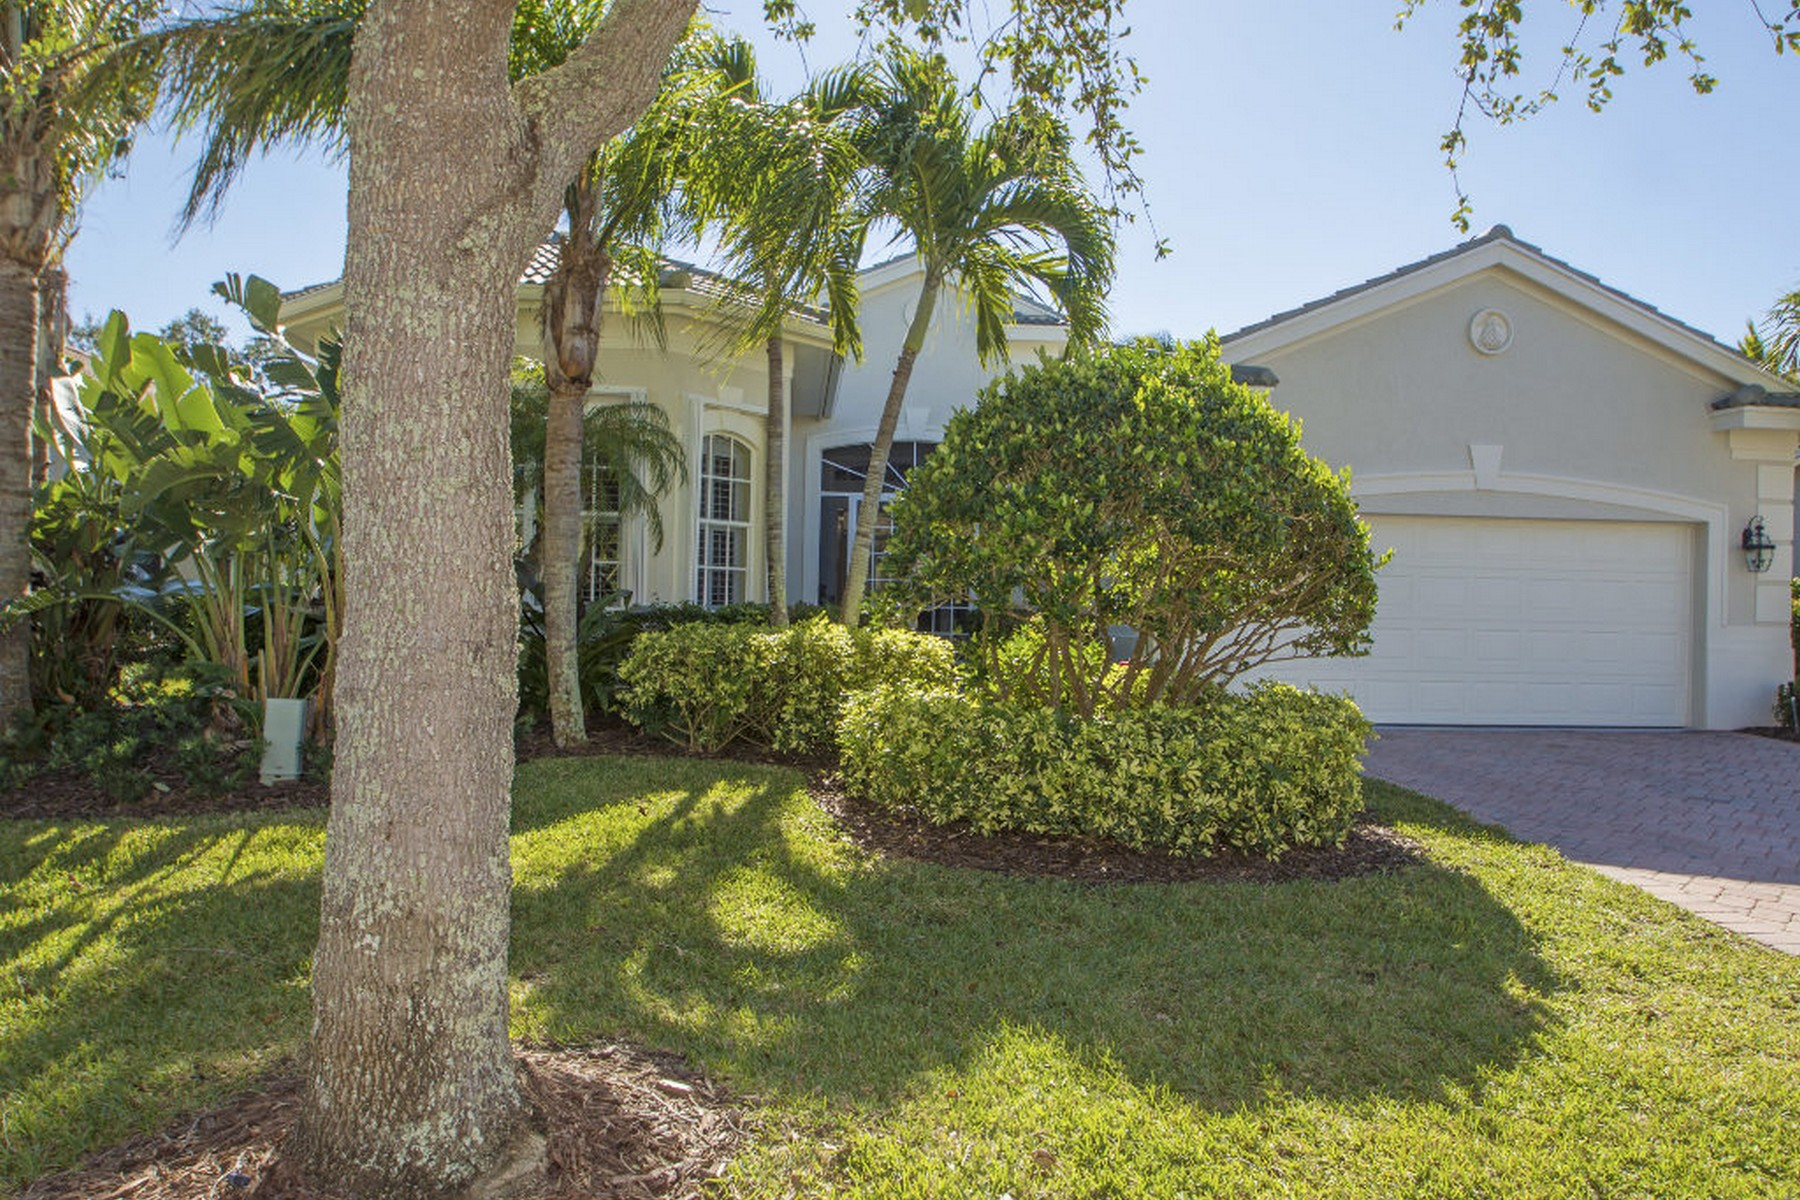 Single Family Home for Sale at Immaculate and Upgraded Home in Island Club 1329 W Island Club Square Vero Beach, Florida 32963 United States